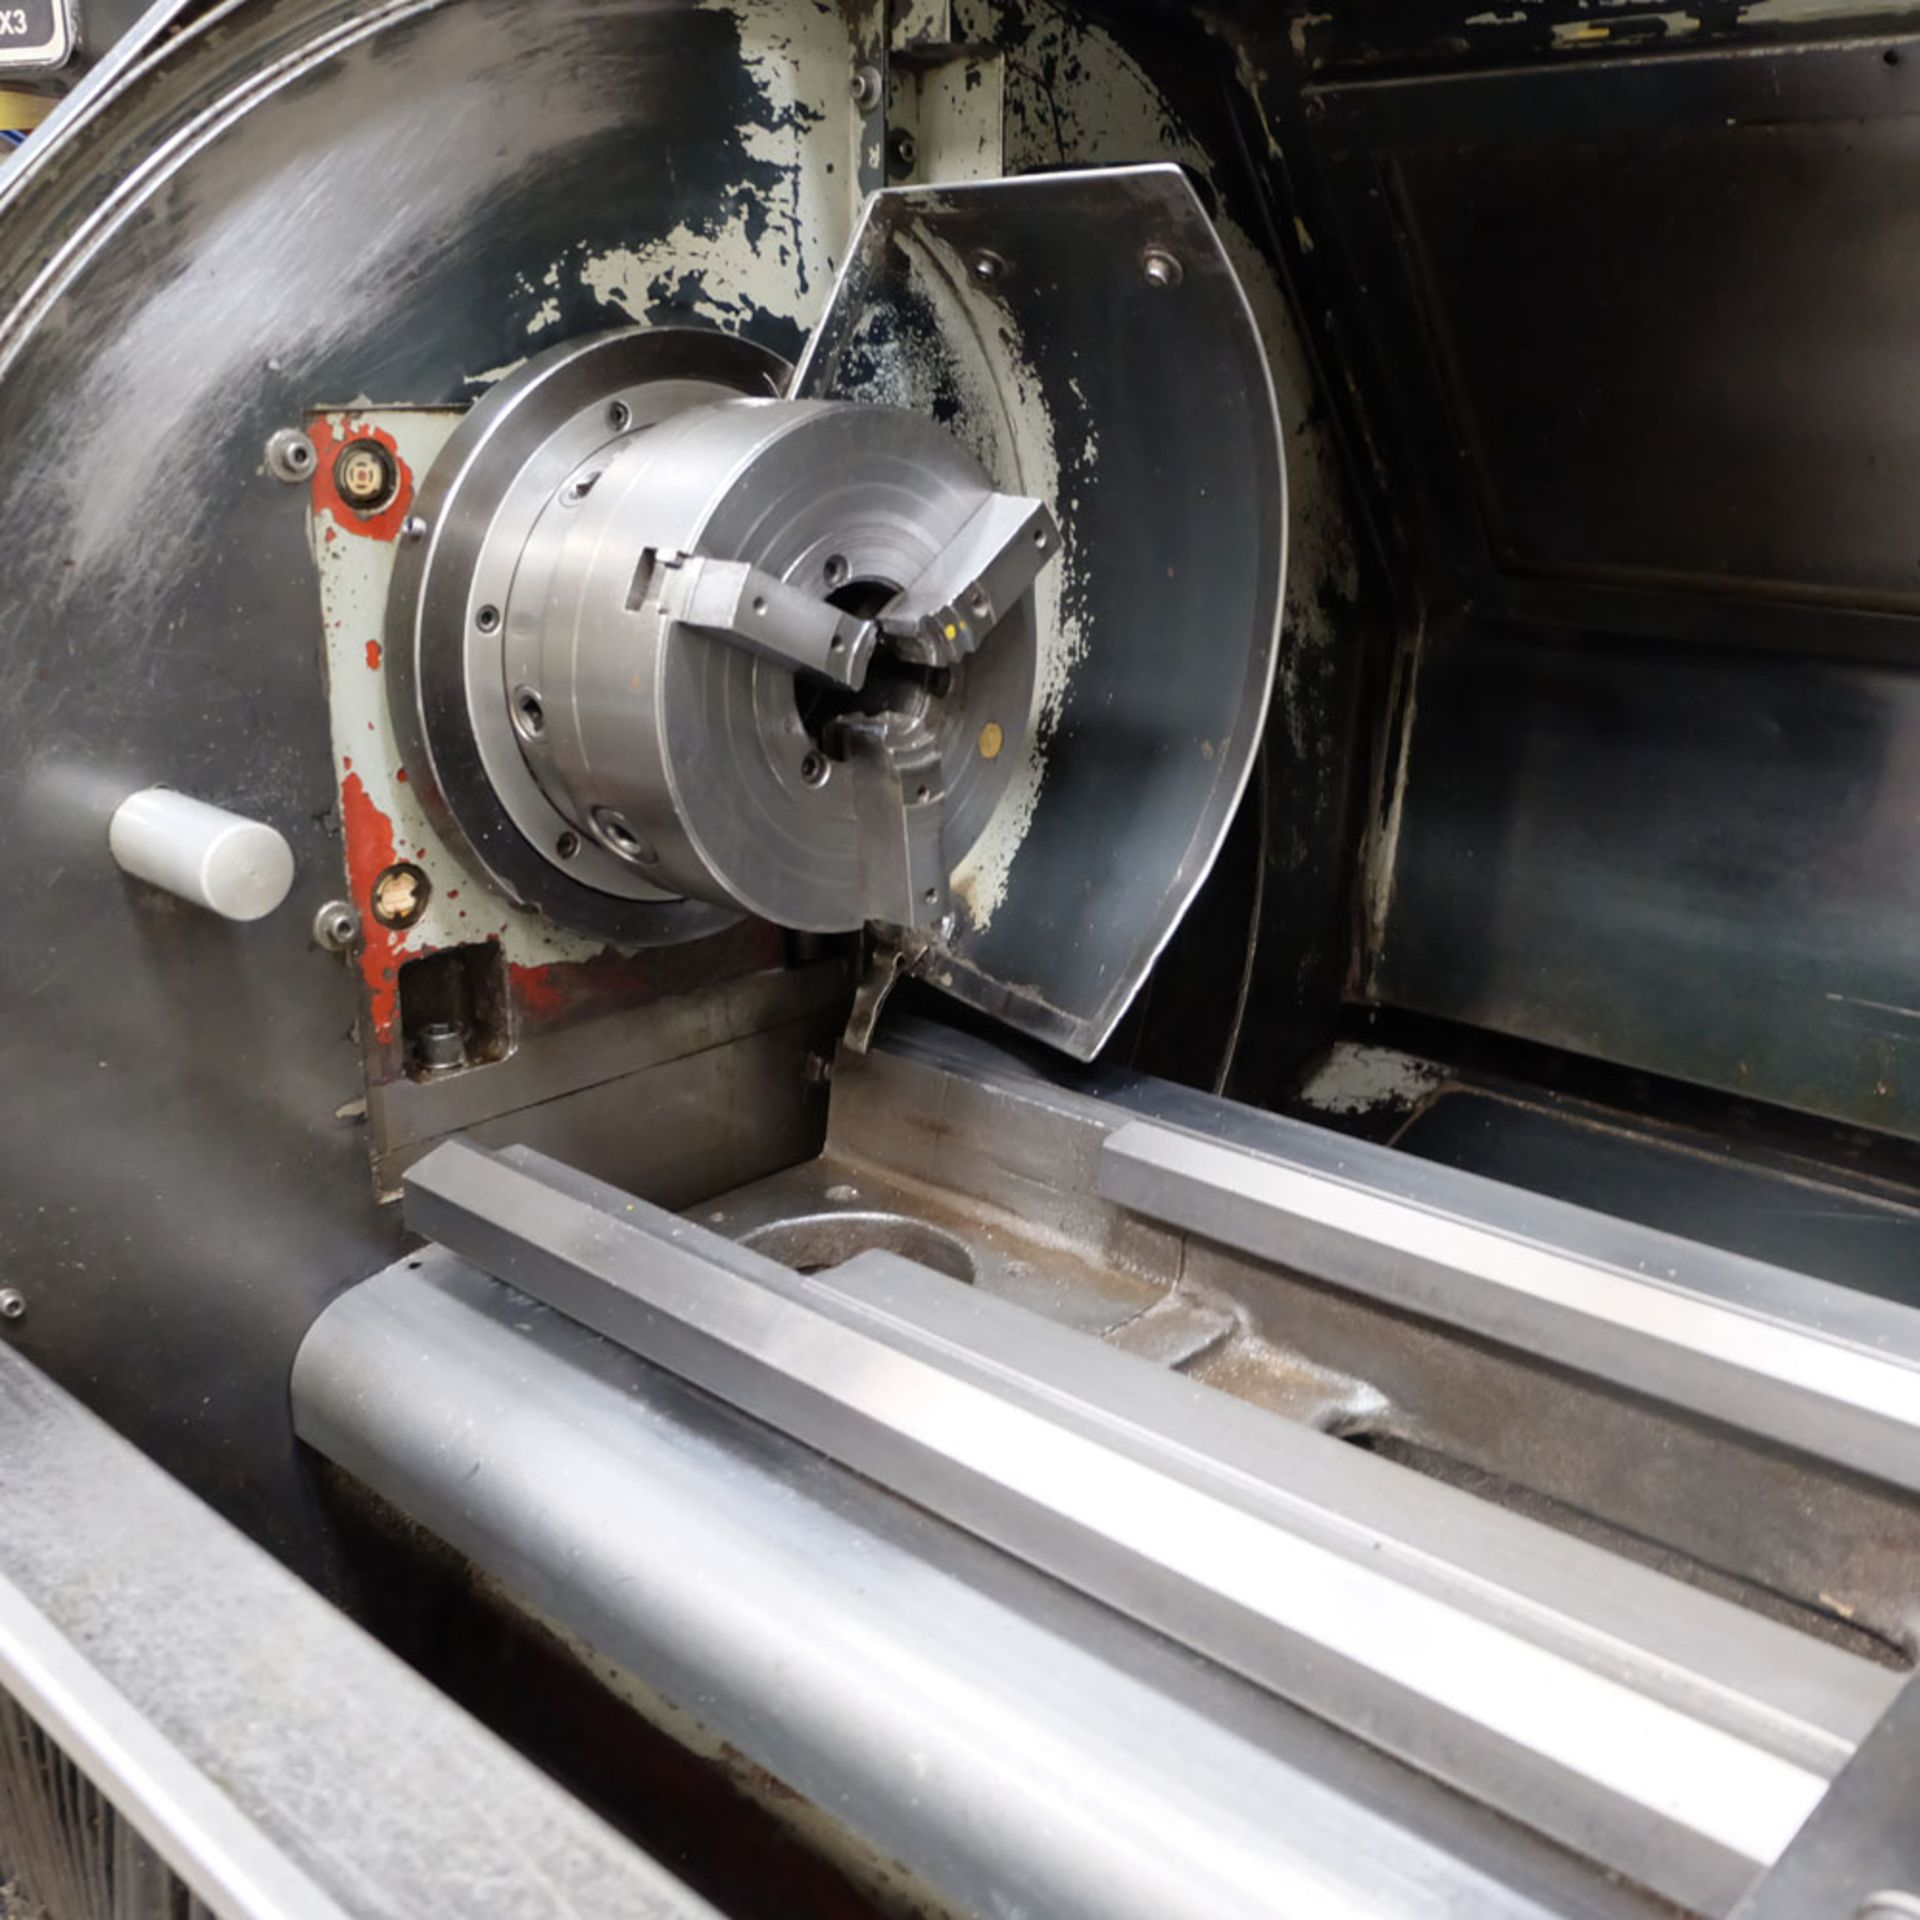 XYZ Proturn 420 Model L480 CNC Lathe with ProtoTrak LX3 Control.Swing Over Bed: 480mm. - Image 4 of 6